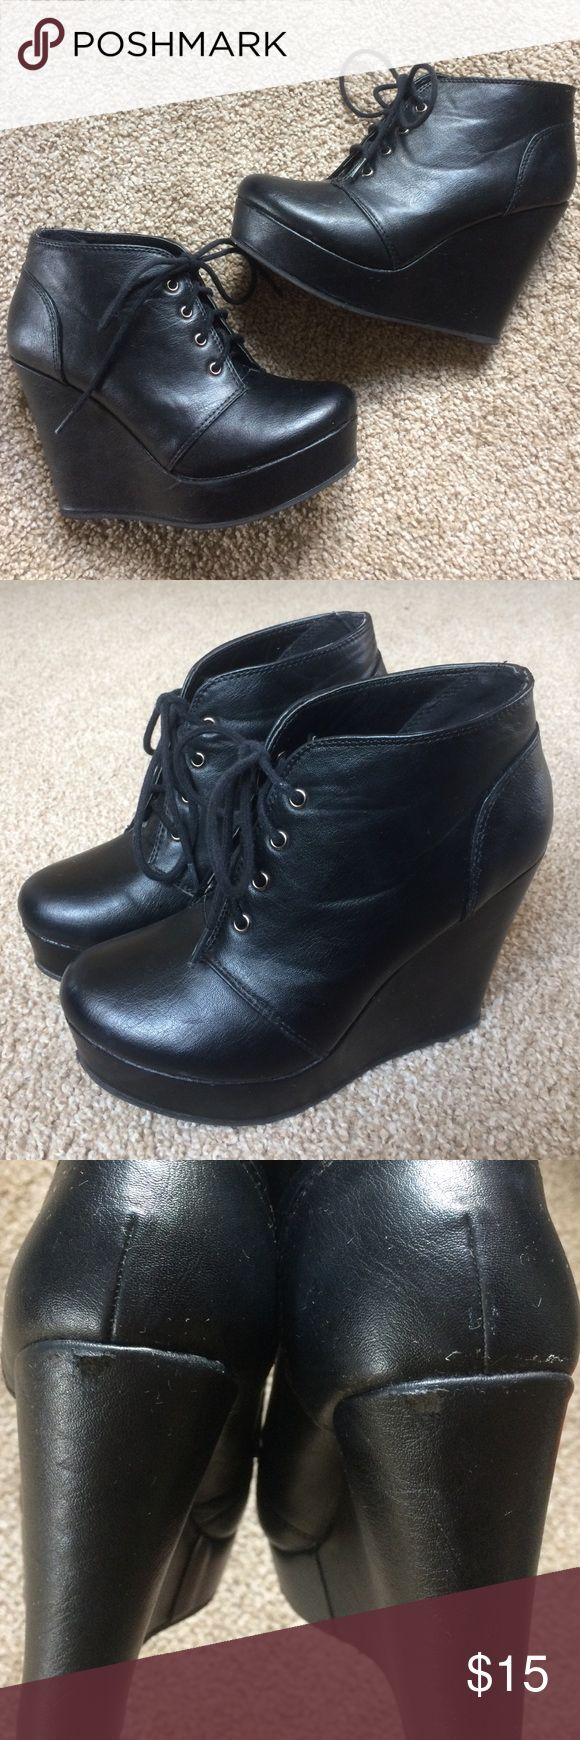 Black wedge boots Lightly worn, a few scuffs shown in the last pictures, size 6 (fits snug) Soda Shoes Ankle Boots & Booties